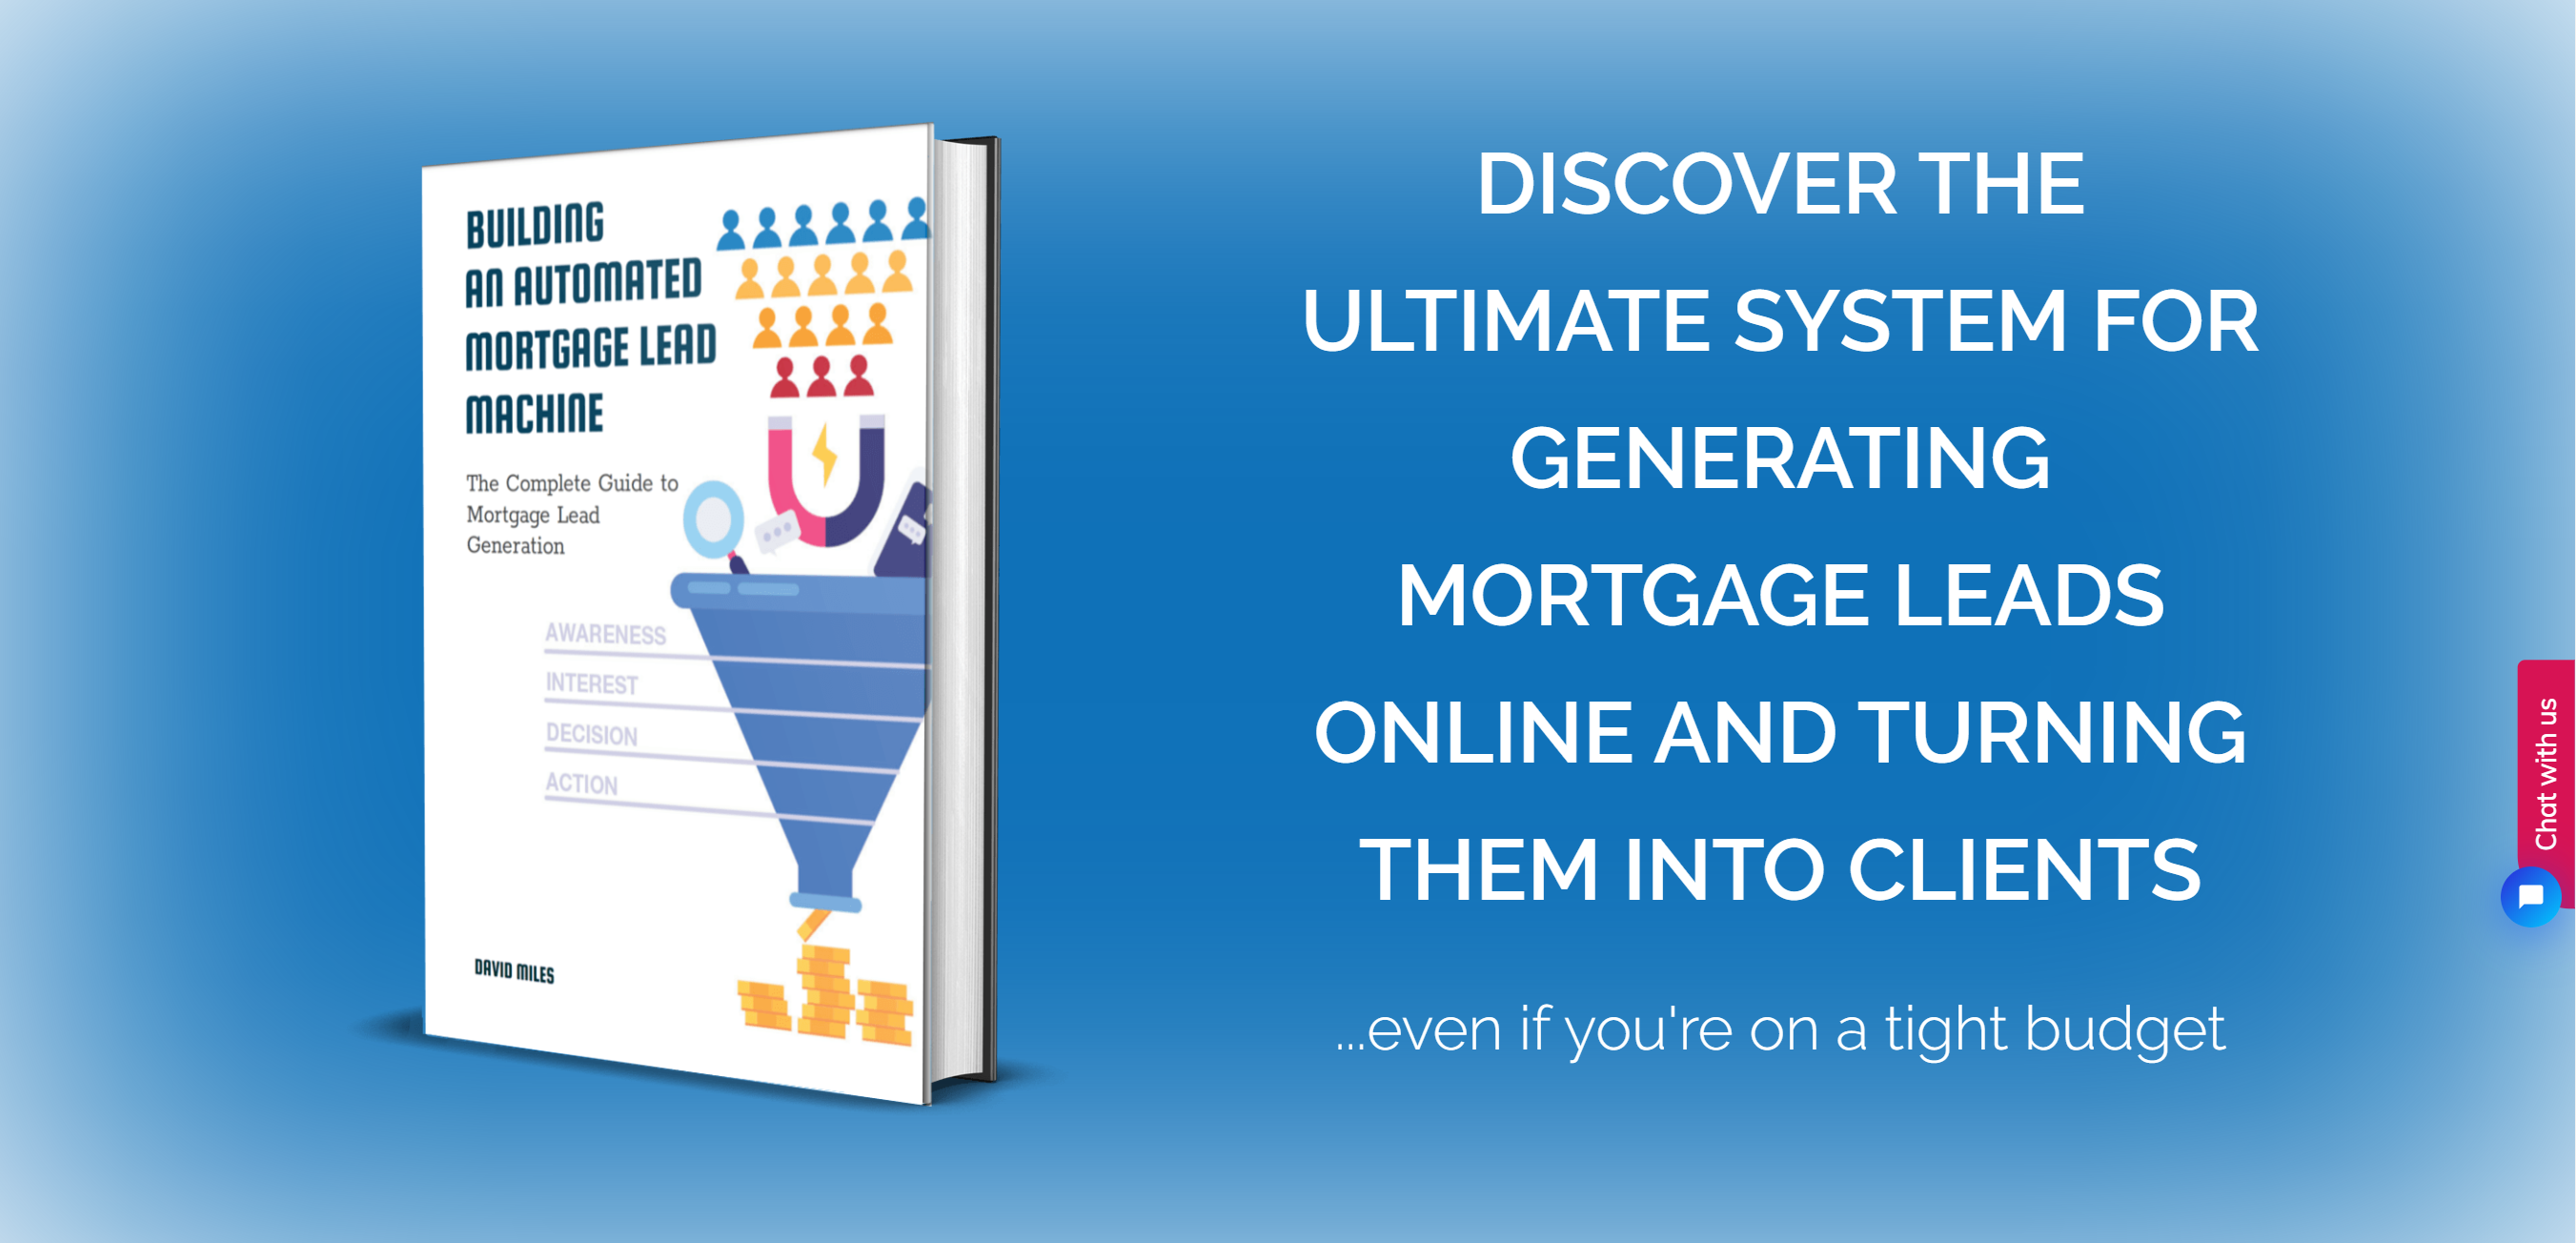 split-testing - How Split-Testing Doubled Sales of My Mortgage Lead Generation Book